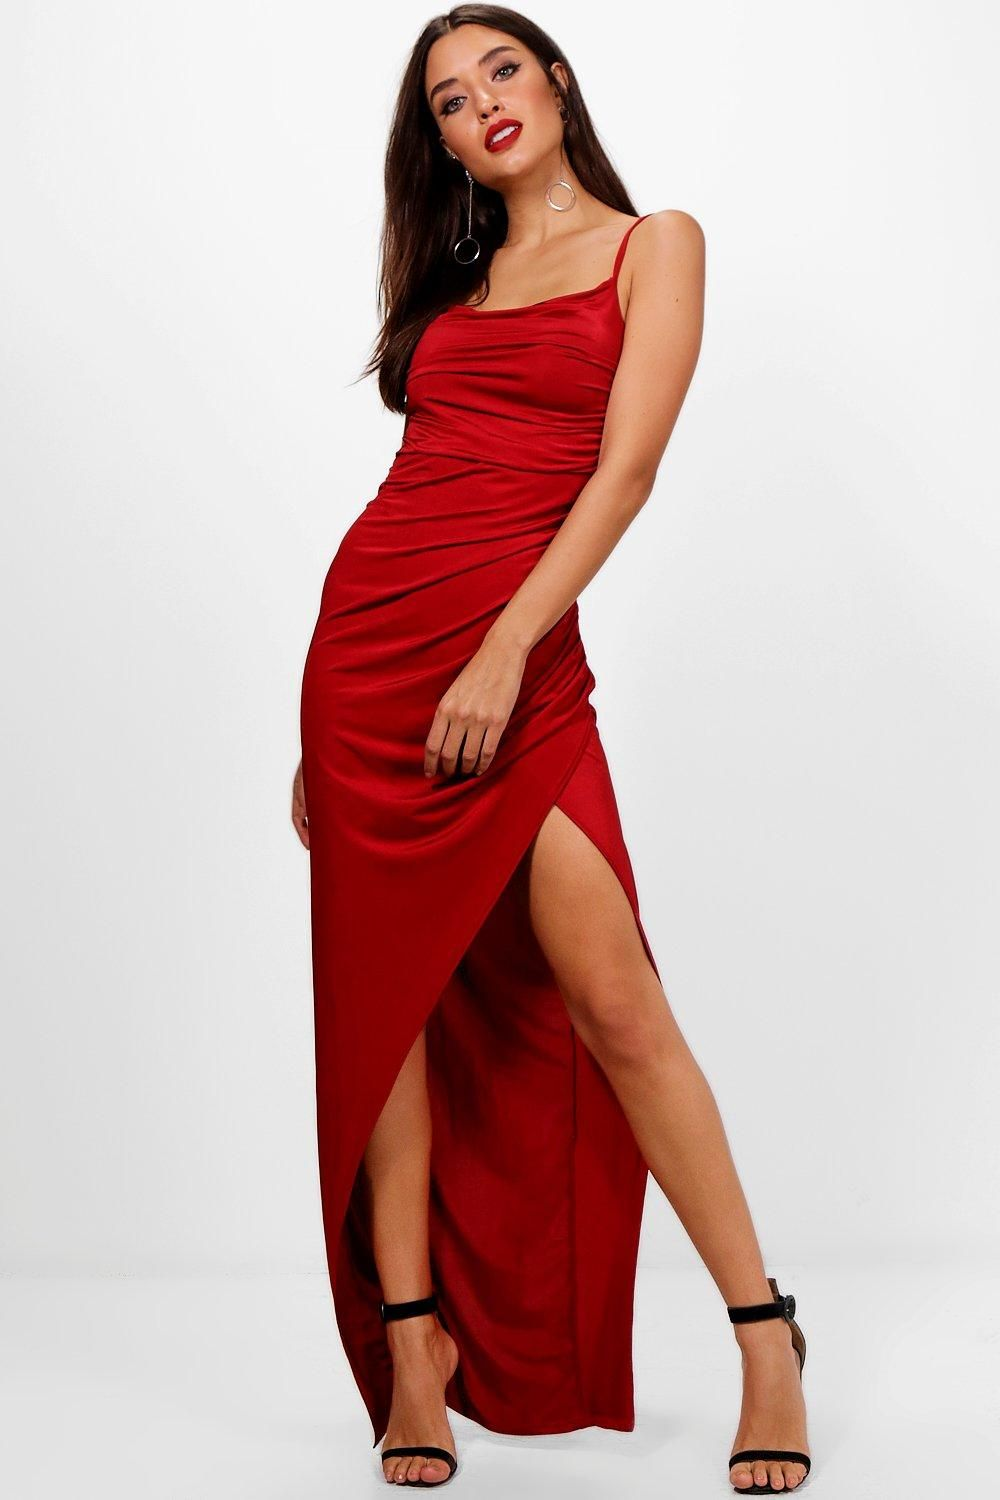 Red Backless Dress with Beaded Detail From Boohoo